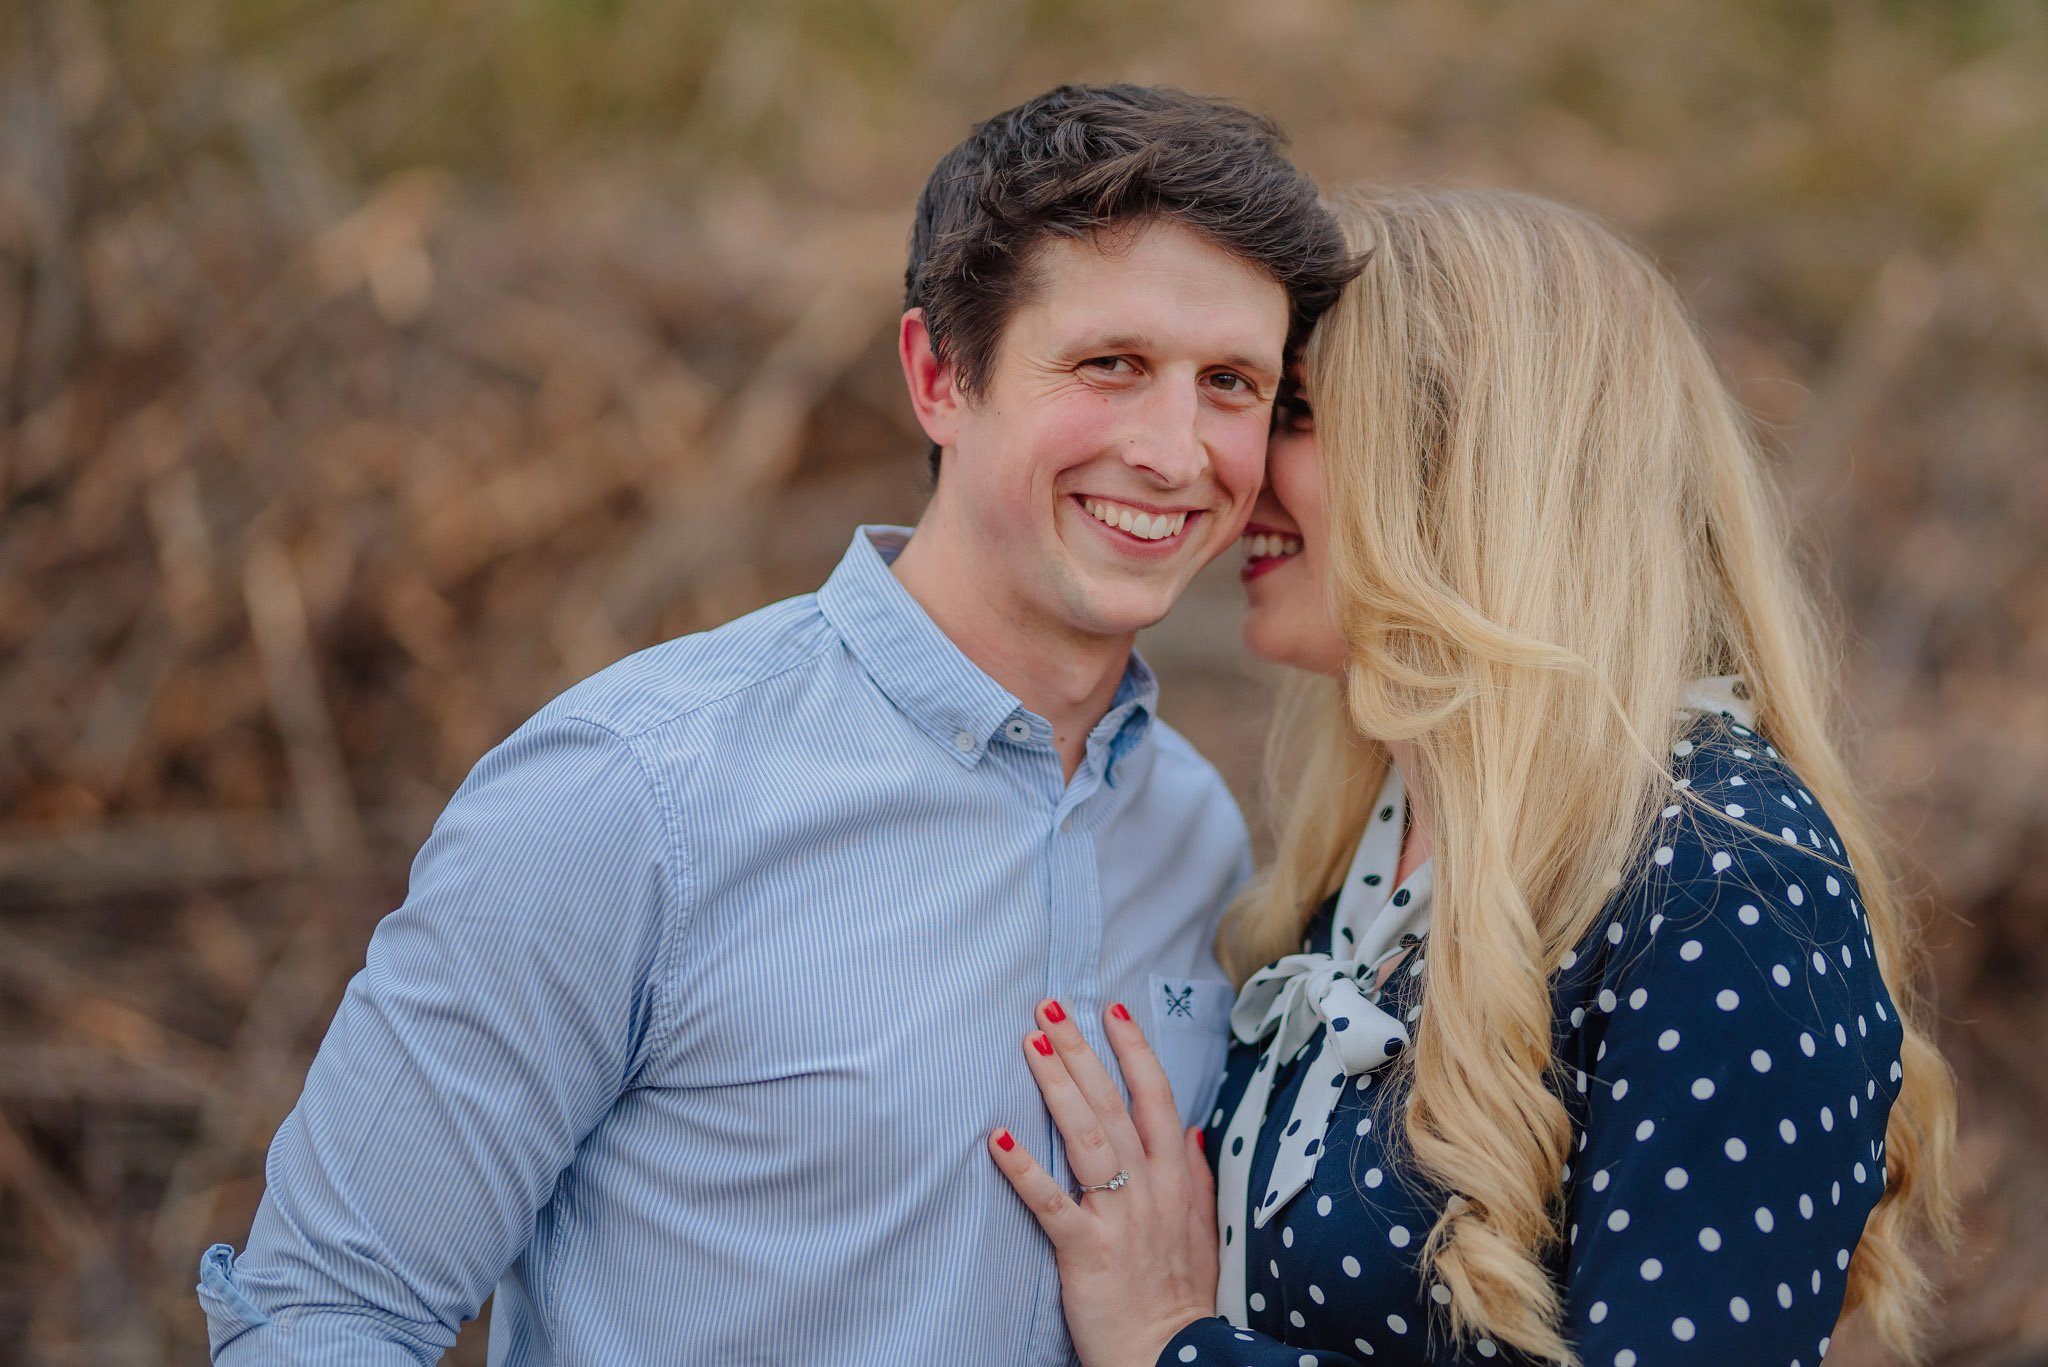 engagement-photography-in-herefordshire-west-midlands (4)